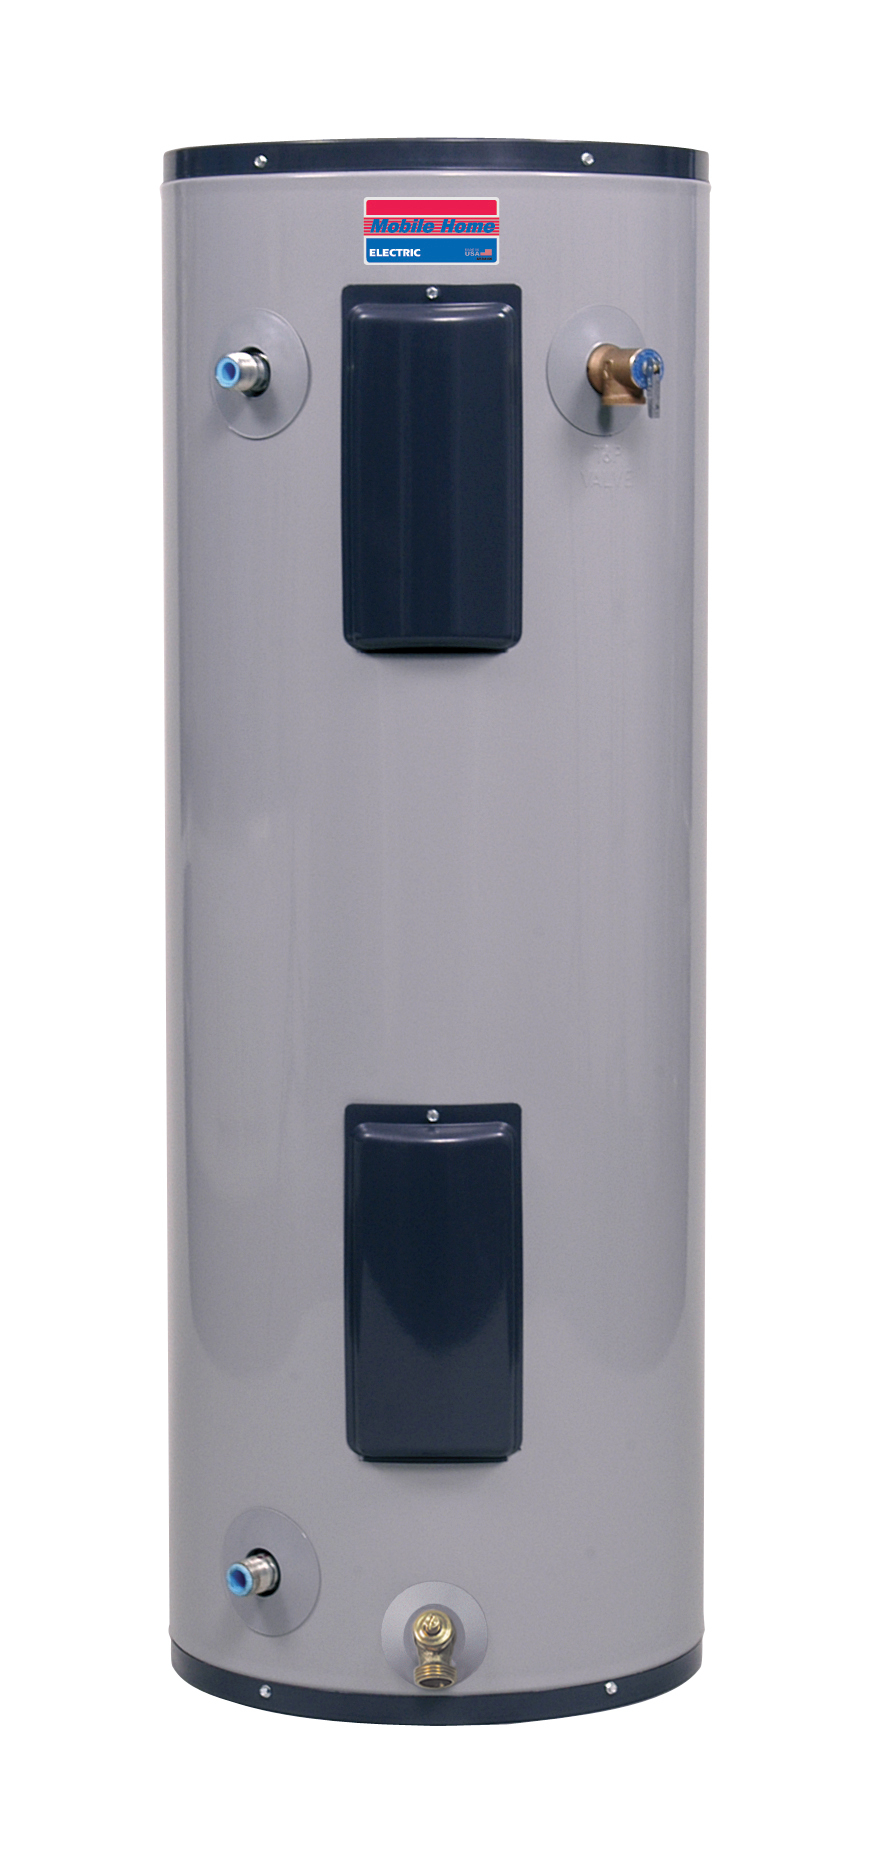 rheem 40 gallon electric water heater. a.o. smith electric mobile home water heater installation caldwell rheem 40 gallon t